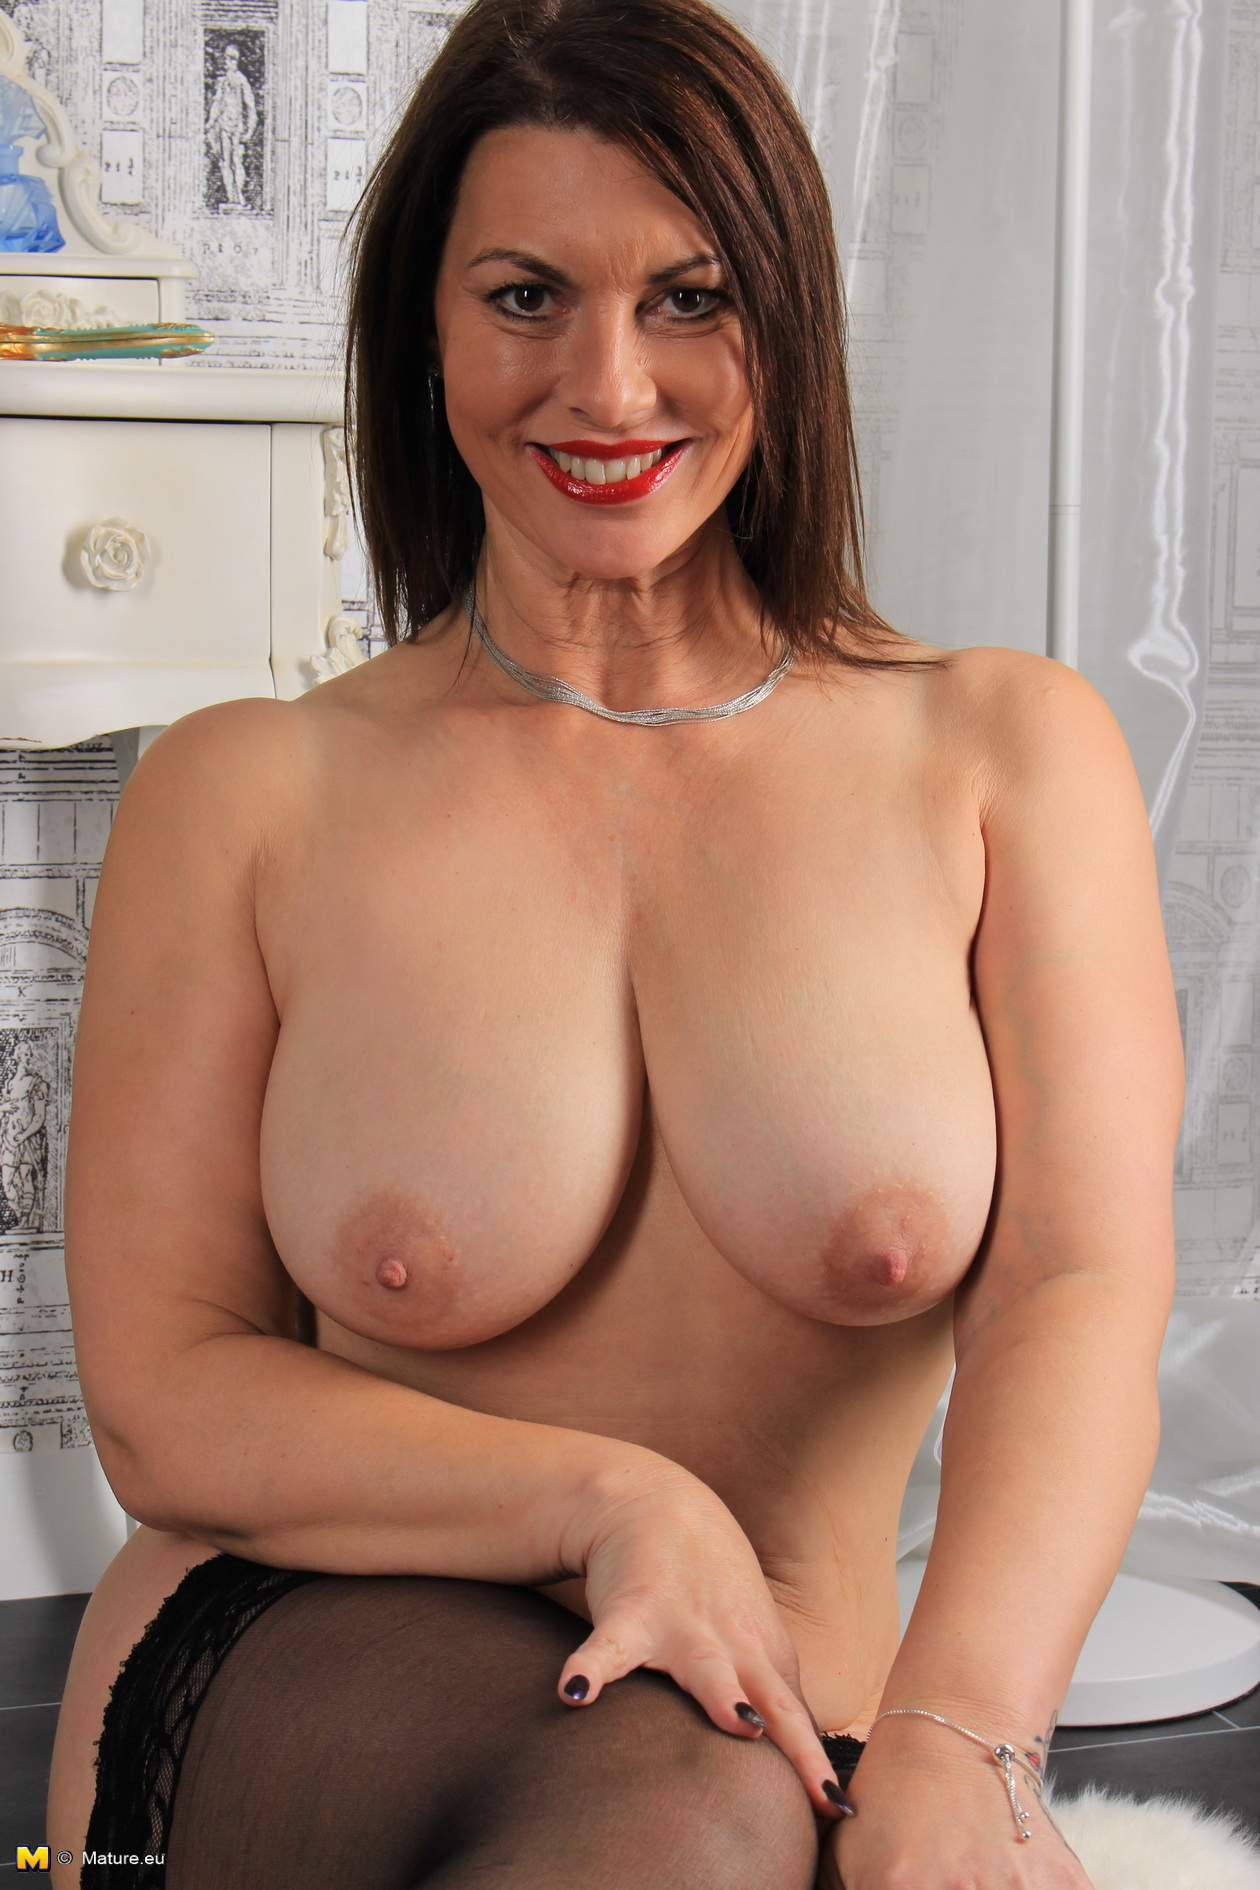 Lovely hottest milf big tits wonderful girl. She